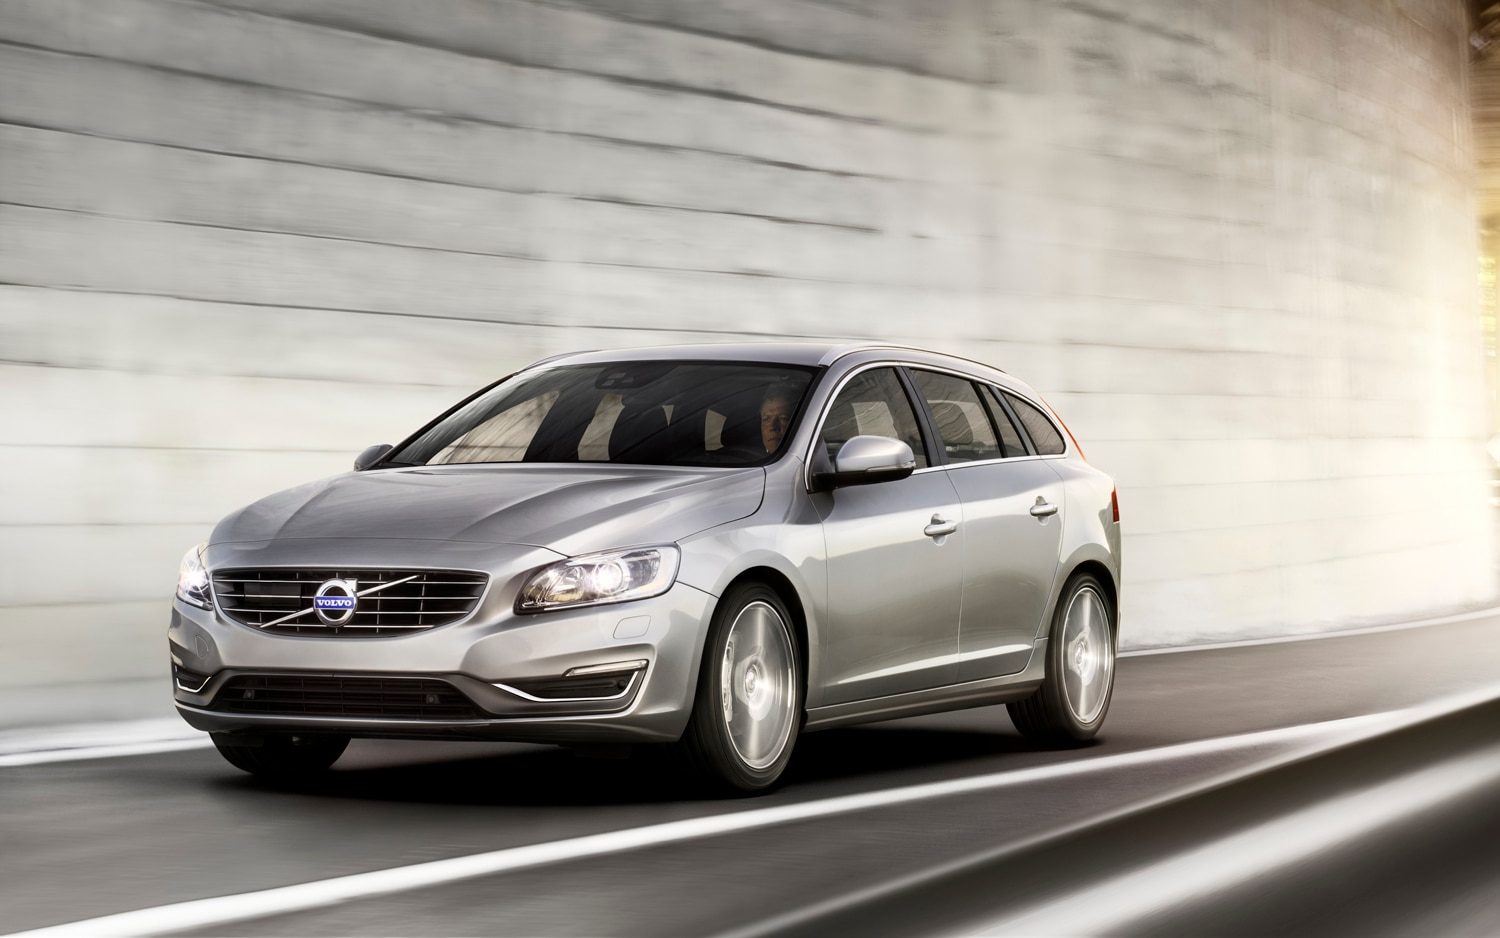 2014 Volvo V60 Front Three Quarter 22